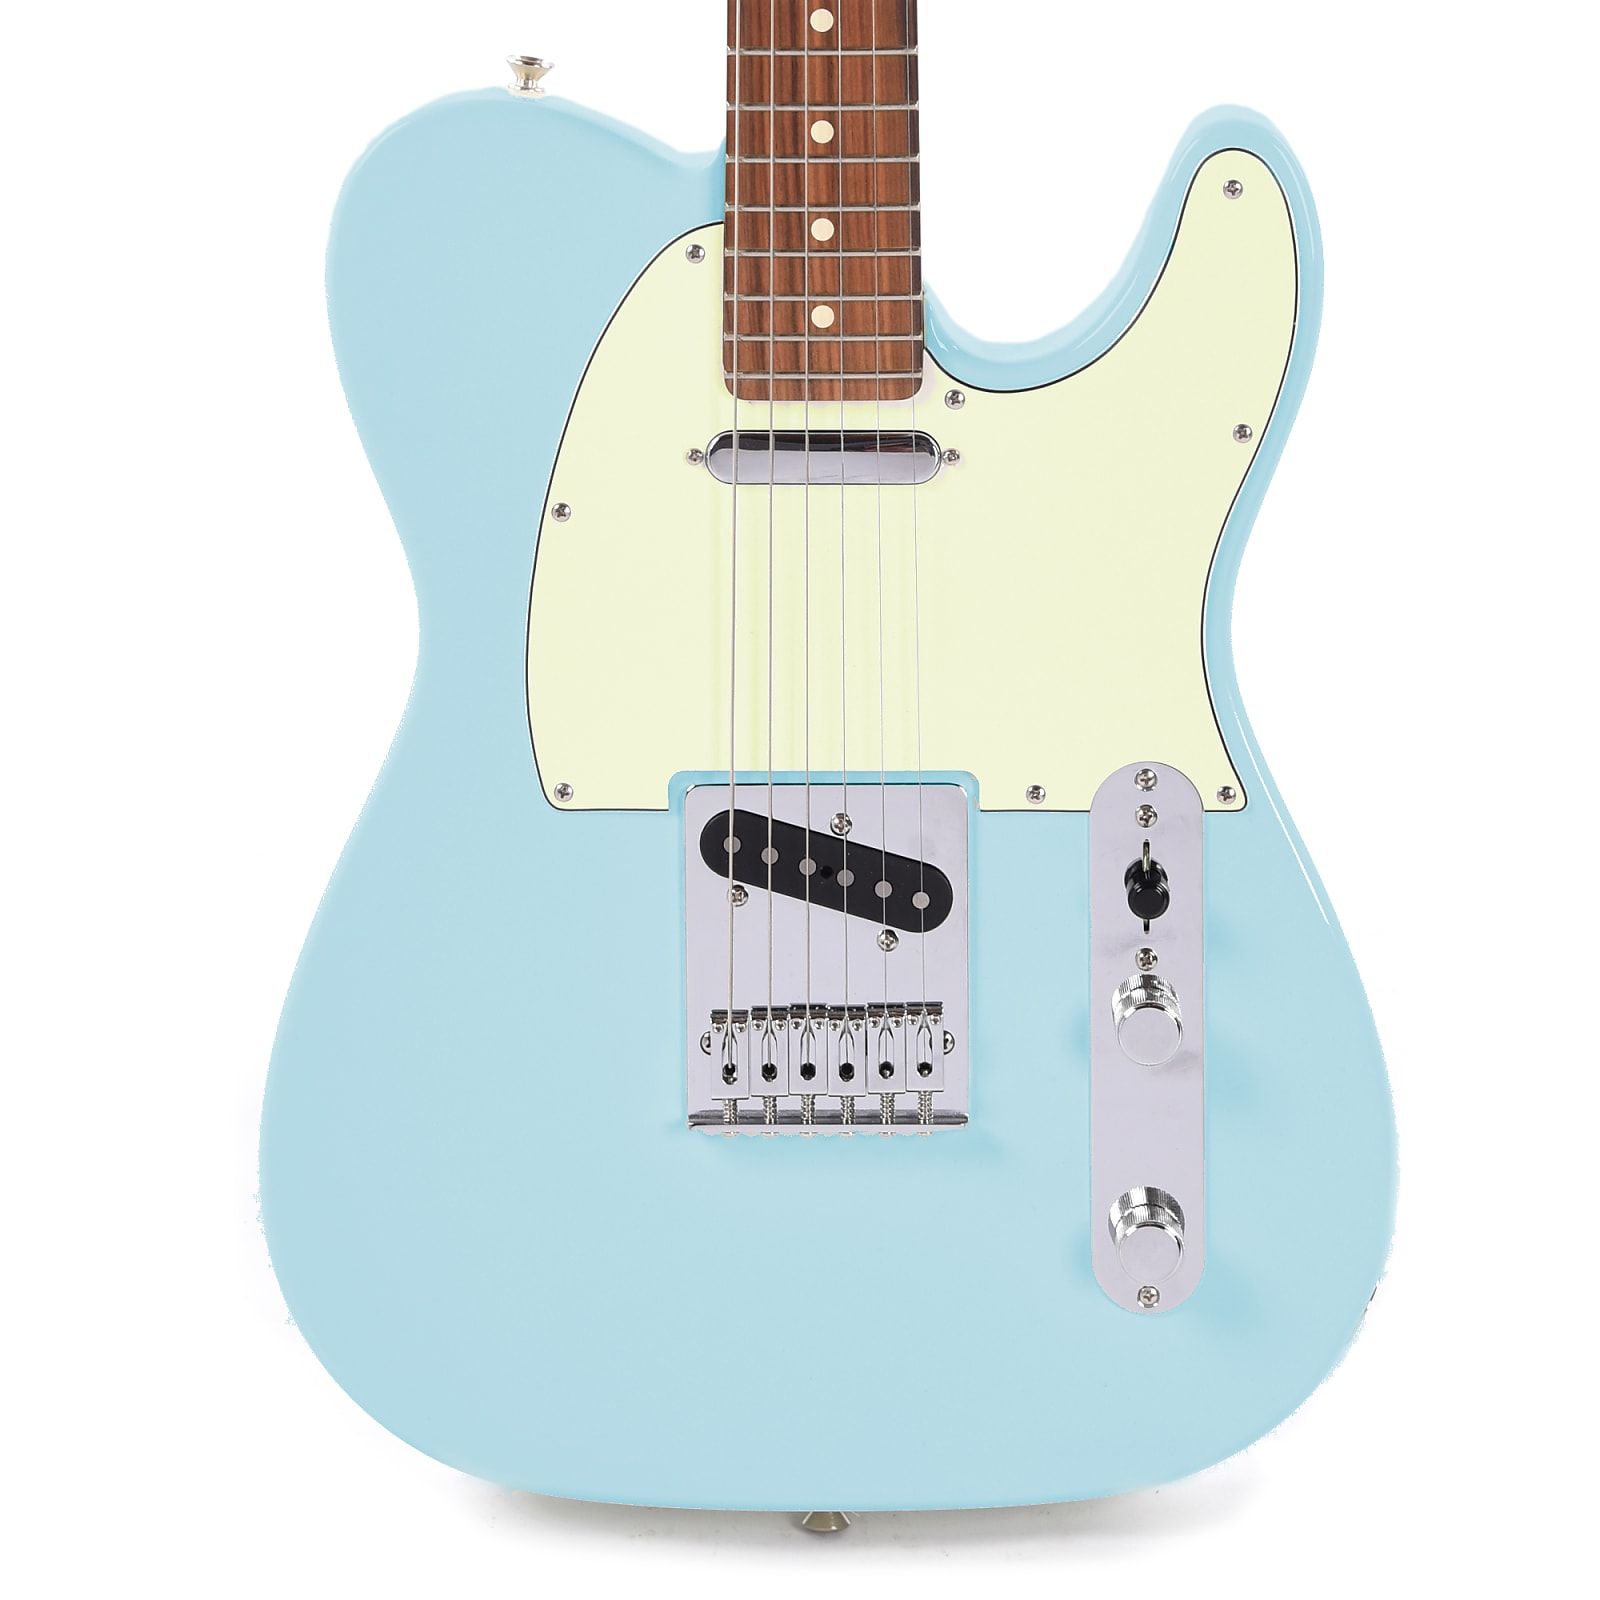 Fender Player Telecaster Daphne Blue w/3-Ply Mint Pickguard (CME Exclusive) Pre-Order